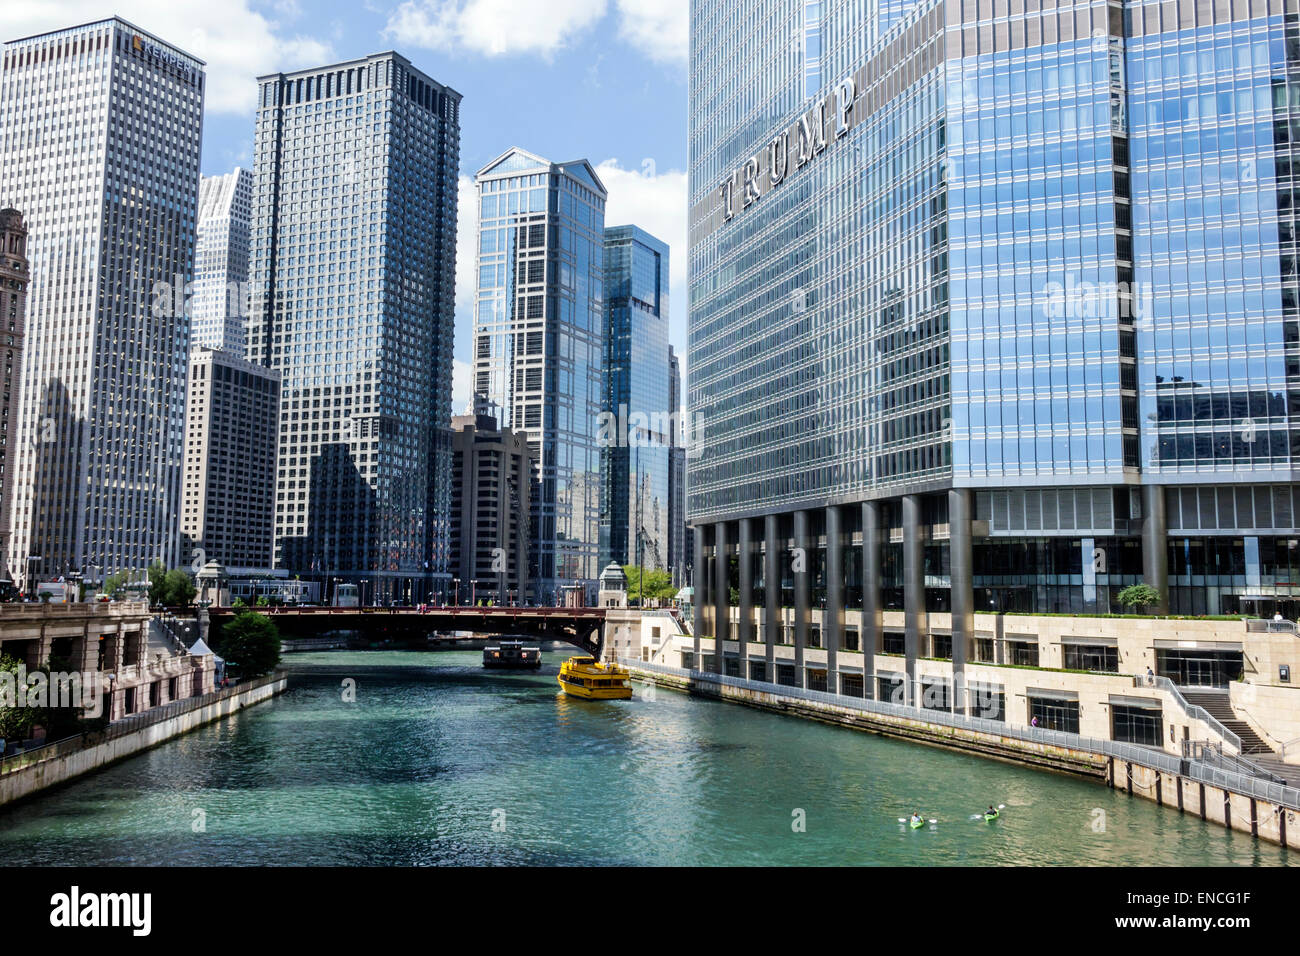 Hotels On North Michigan Avenue Chicago